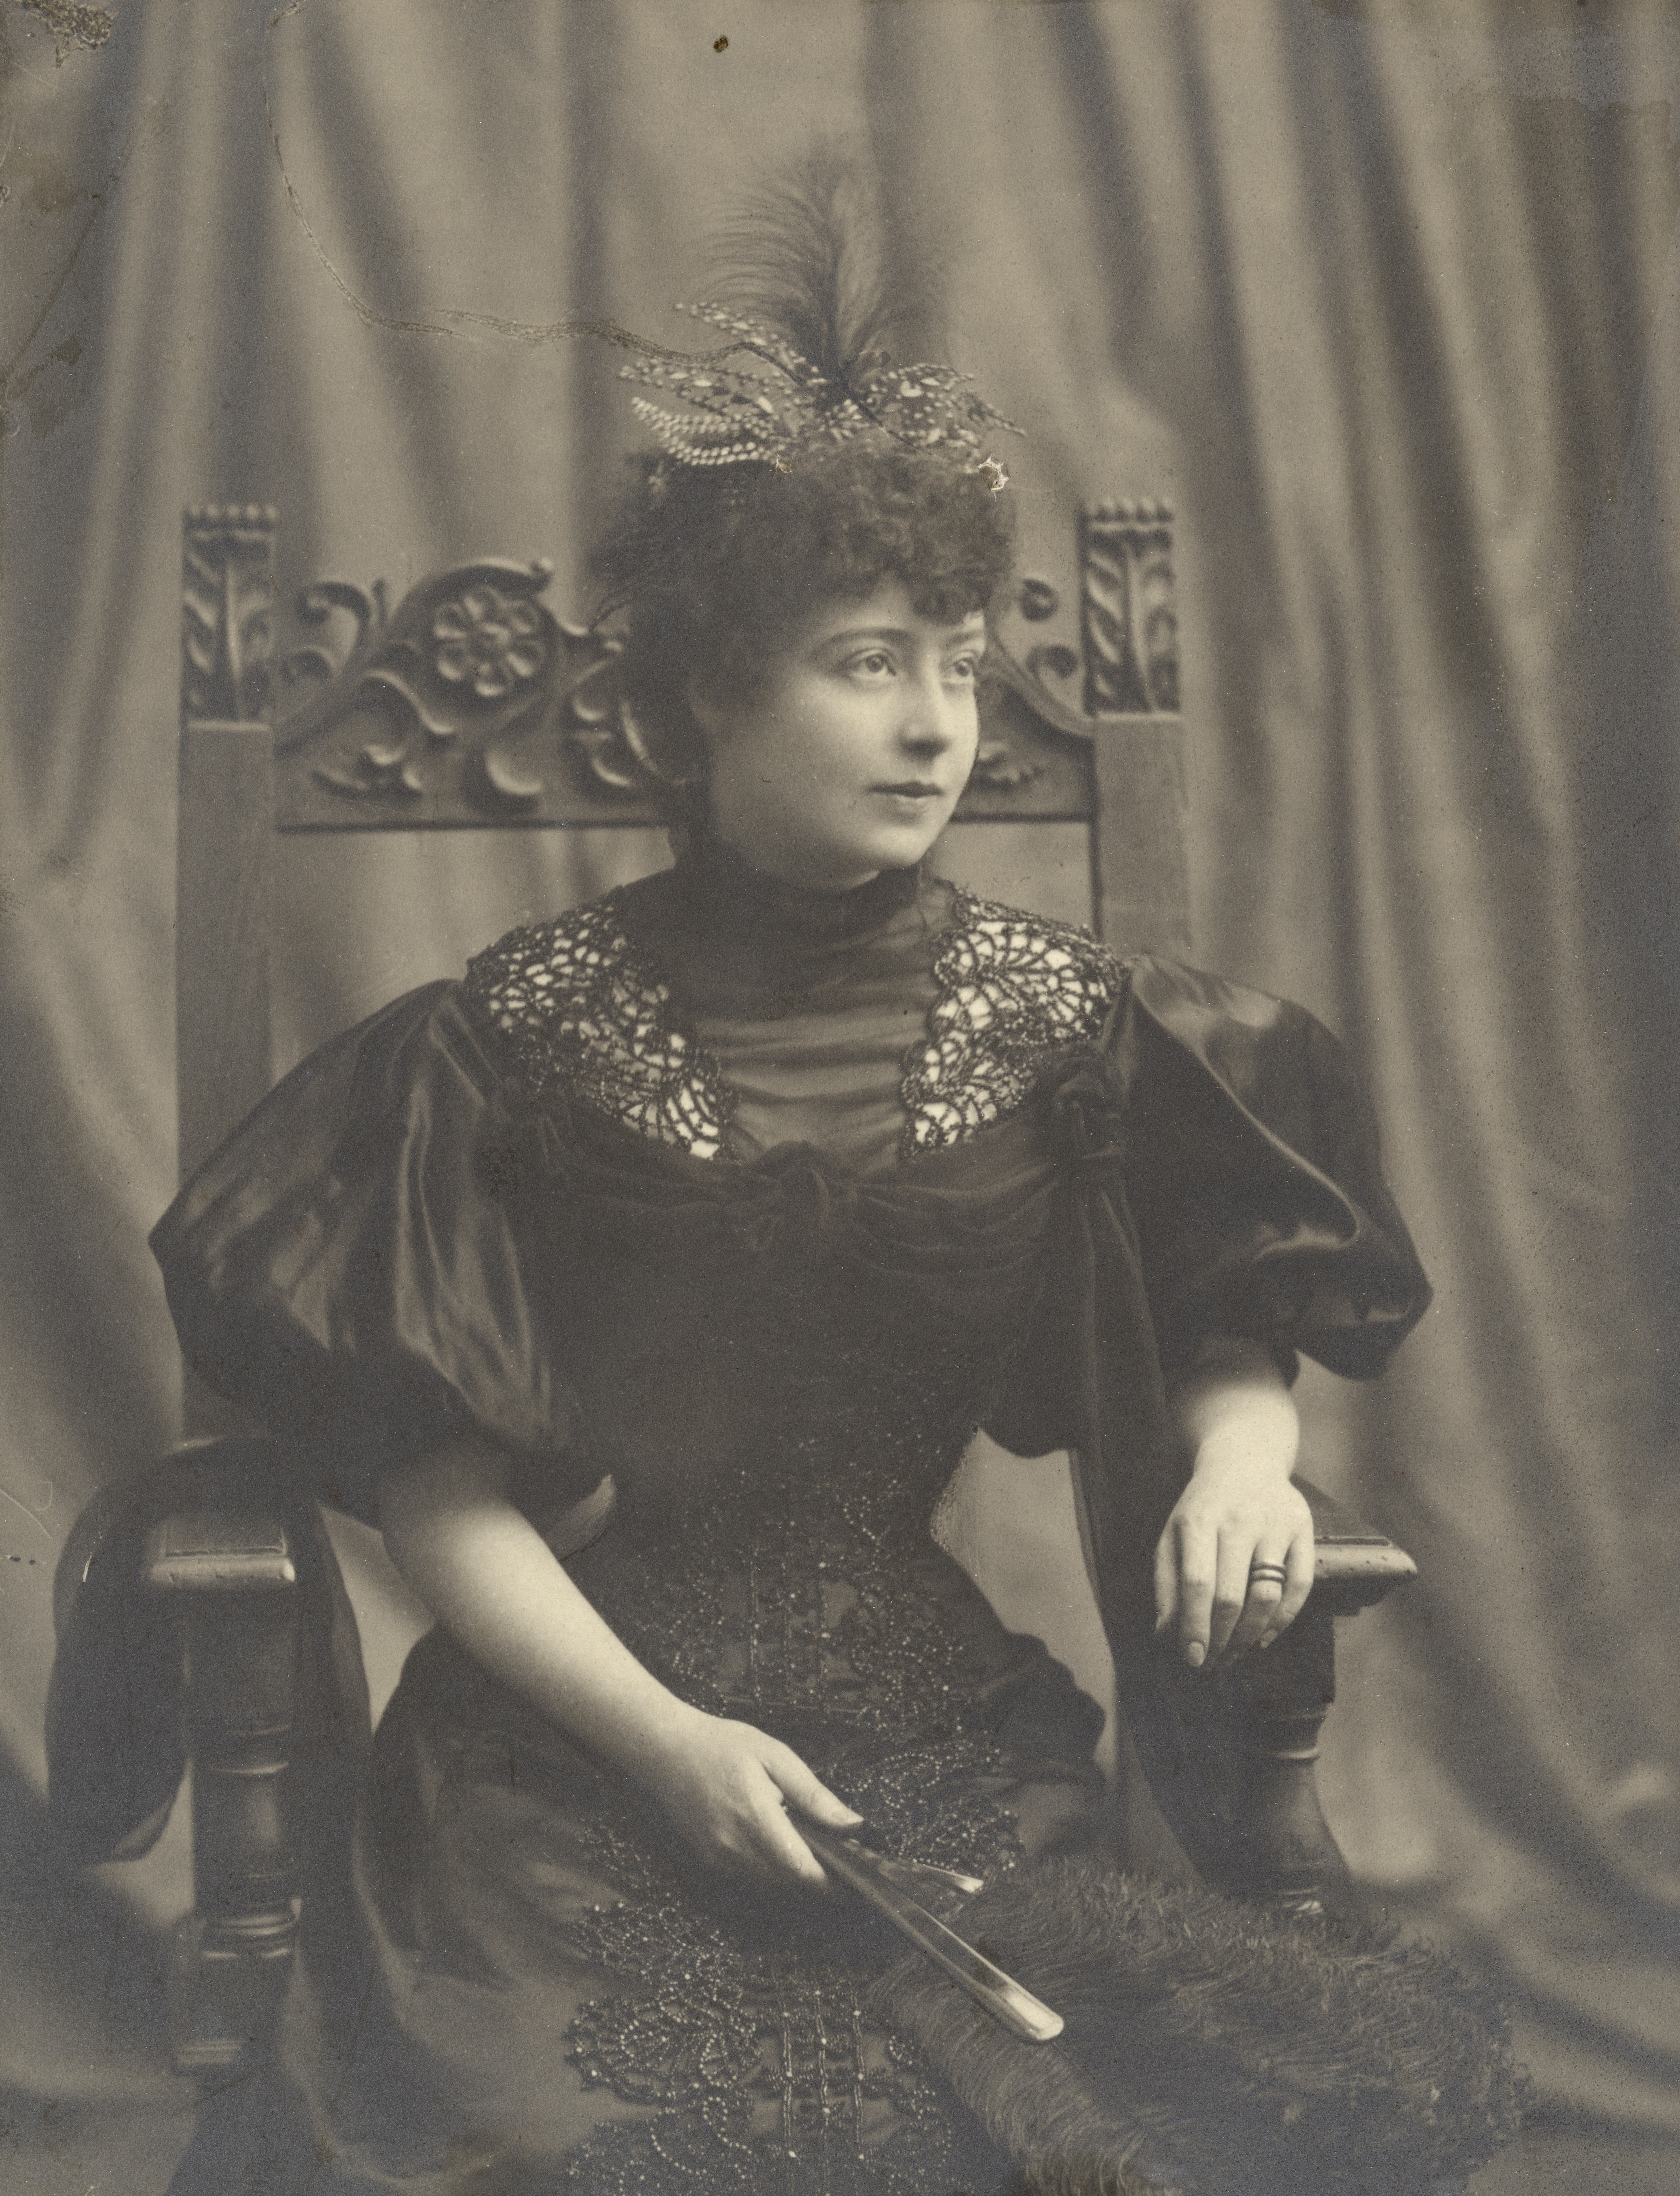 Lucie Lagerbielke. Photographer and year unknown (Privately owned image. Copy by Per Myrehed)